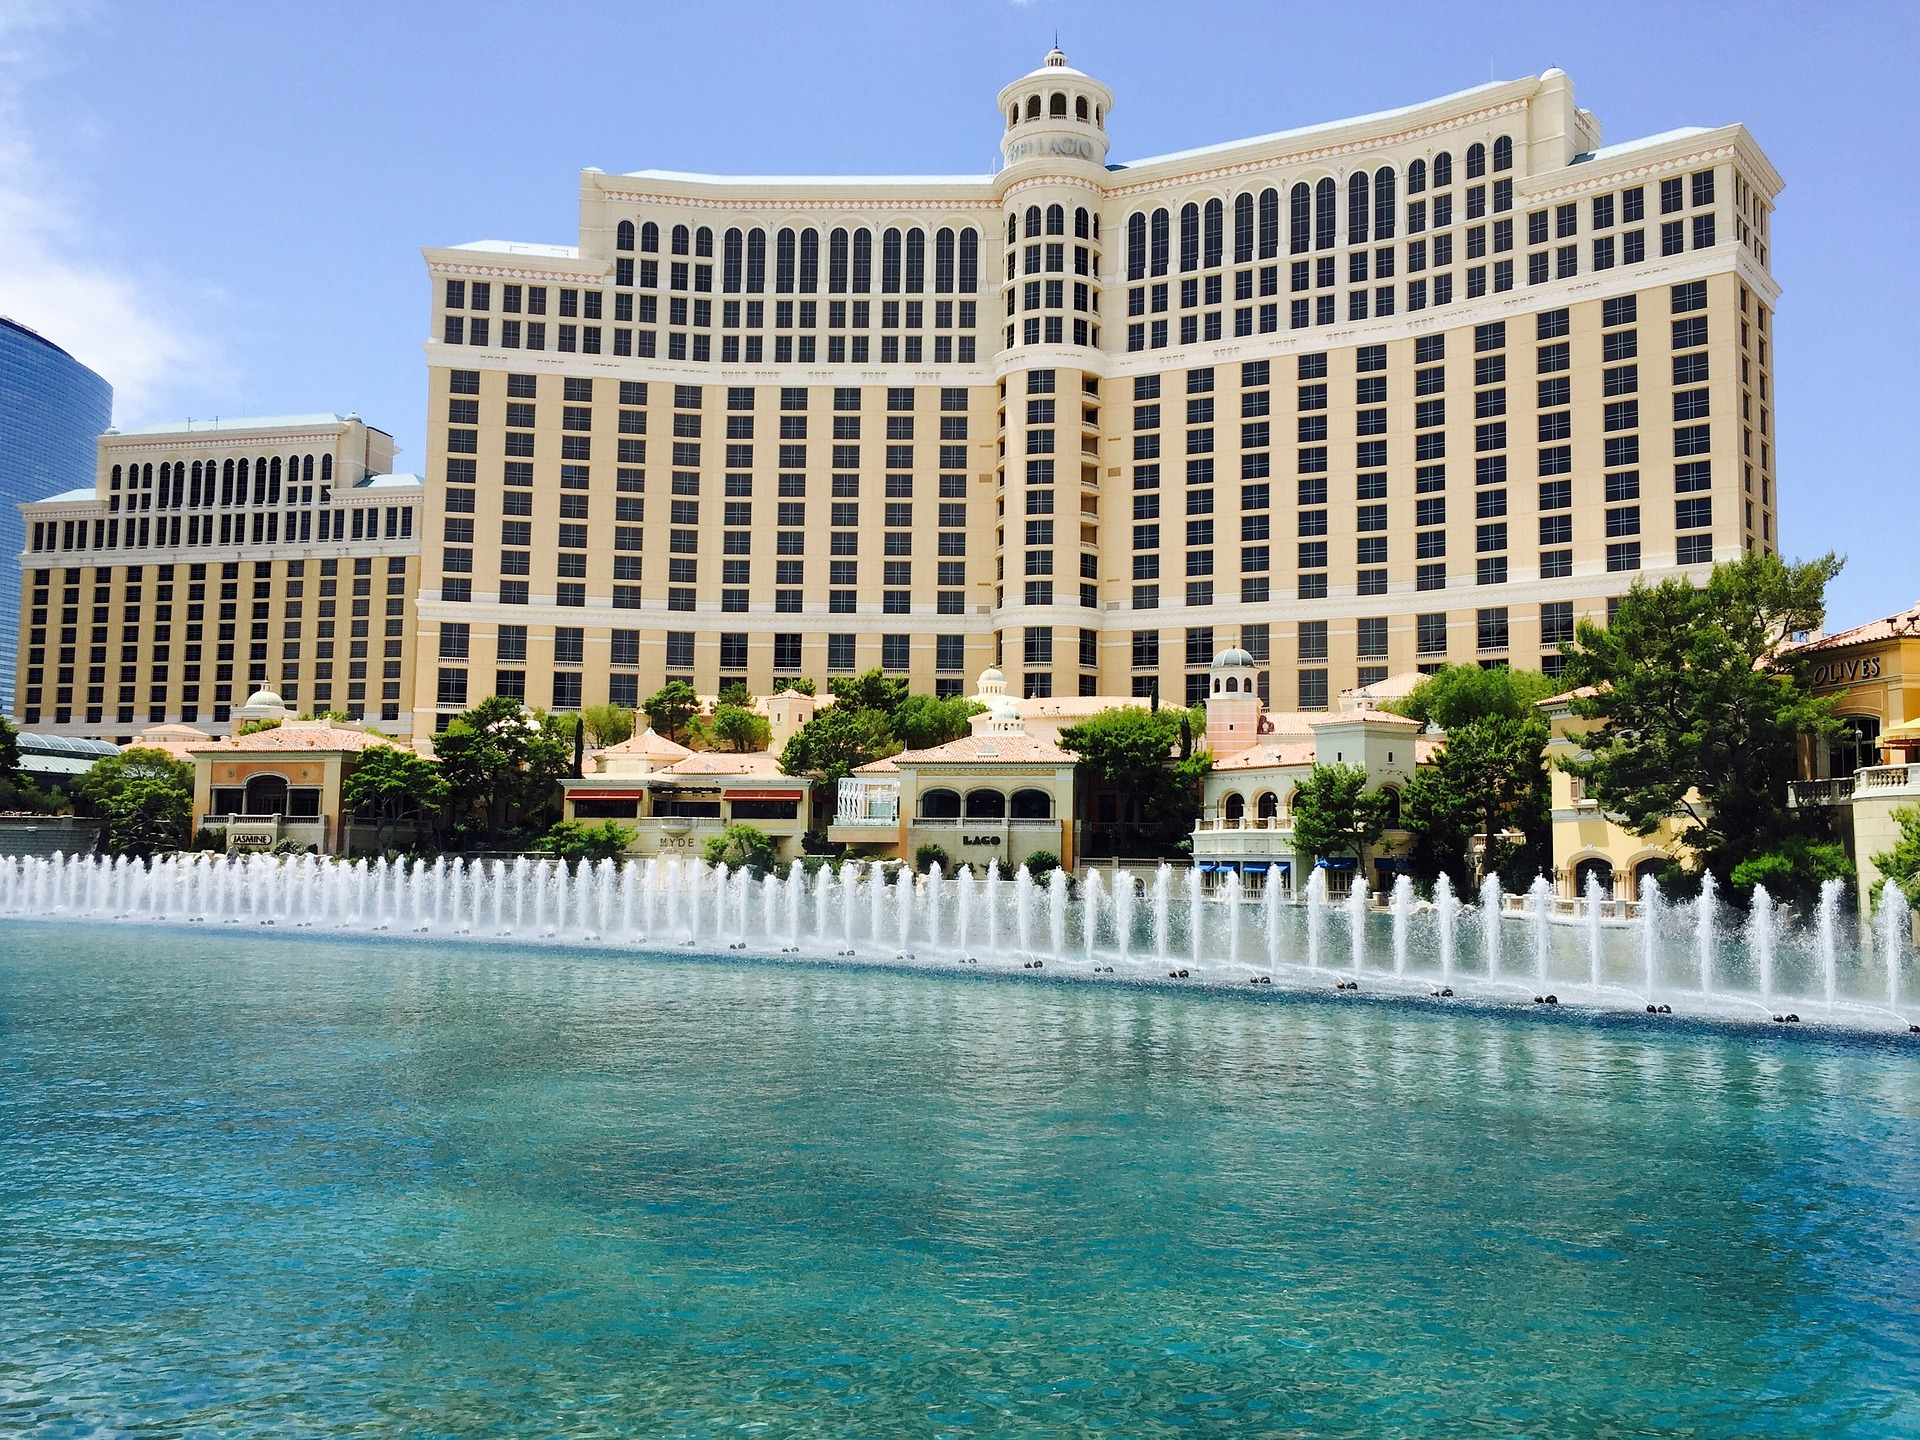 The Bellagio - Las Vegas, United States